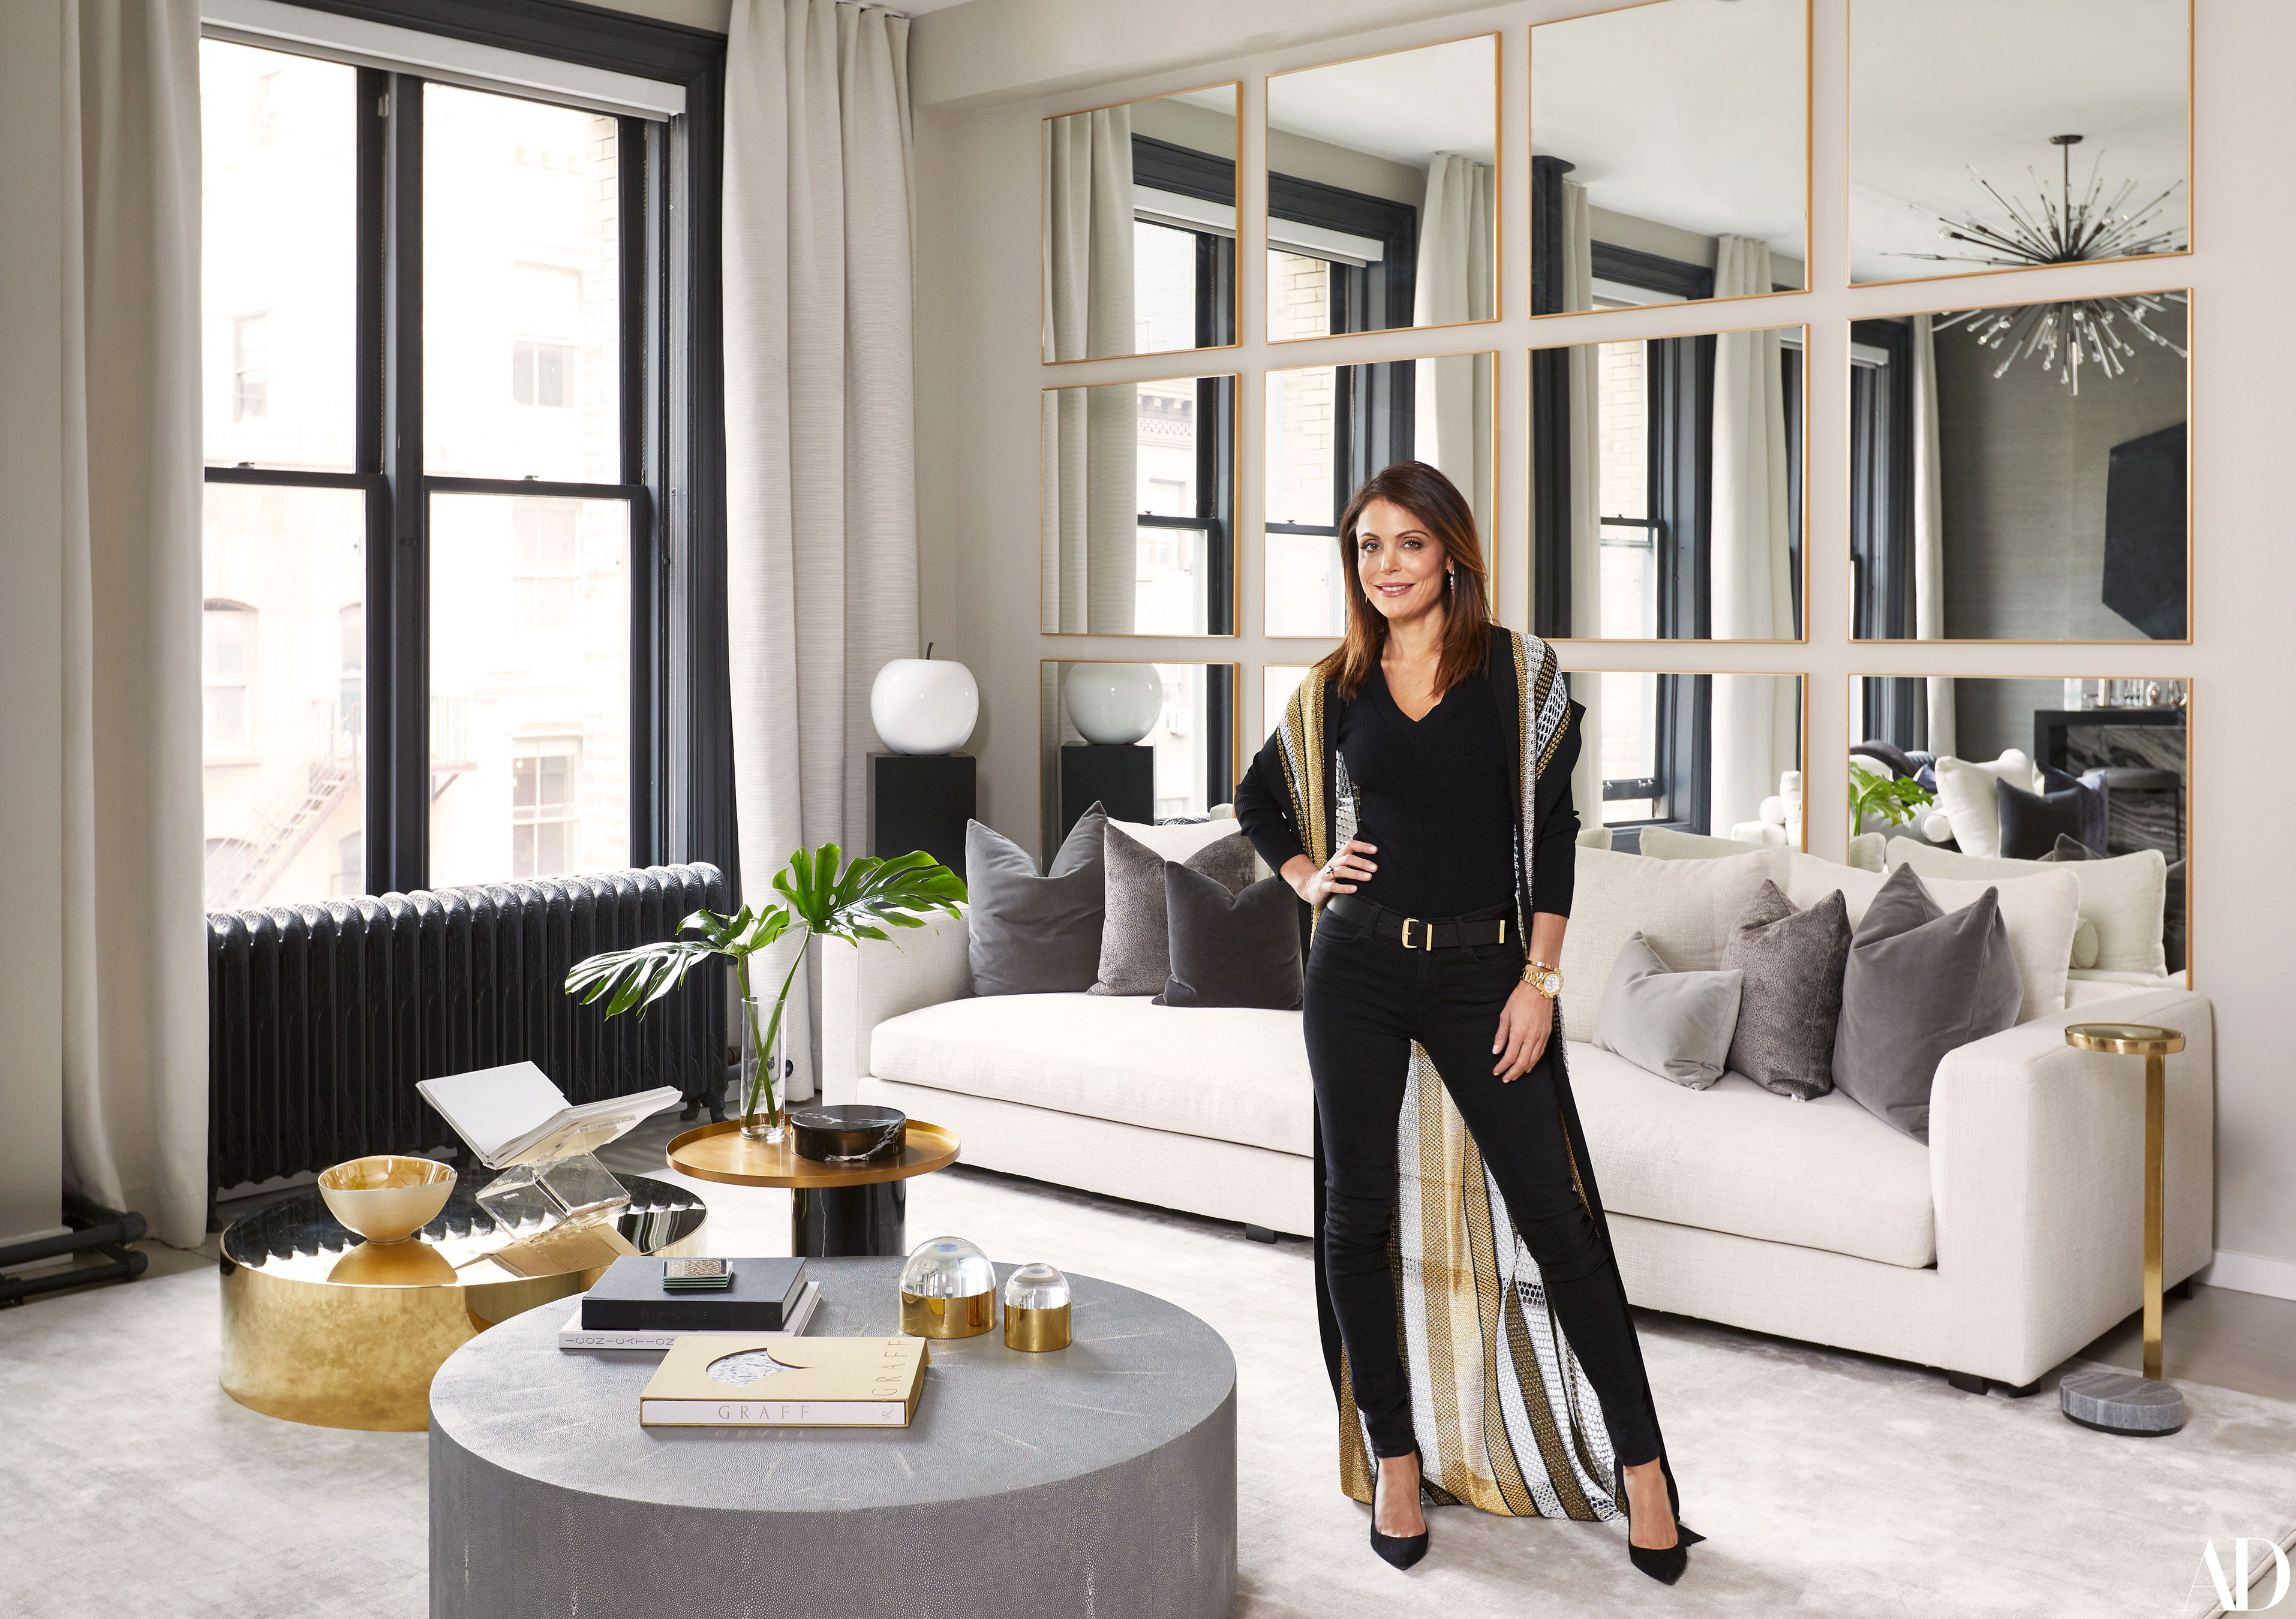 Bethenny Frankel New York City House Photos Luxury Living Room Mirror Wall Living Room Living Room Decor